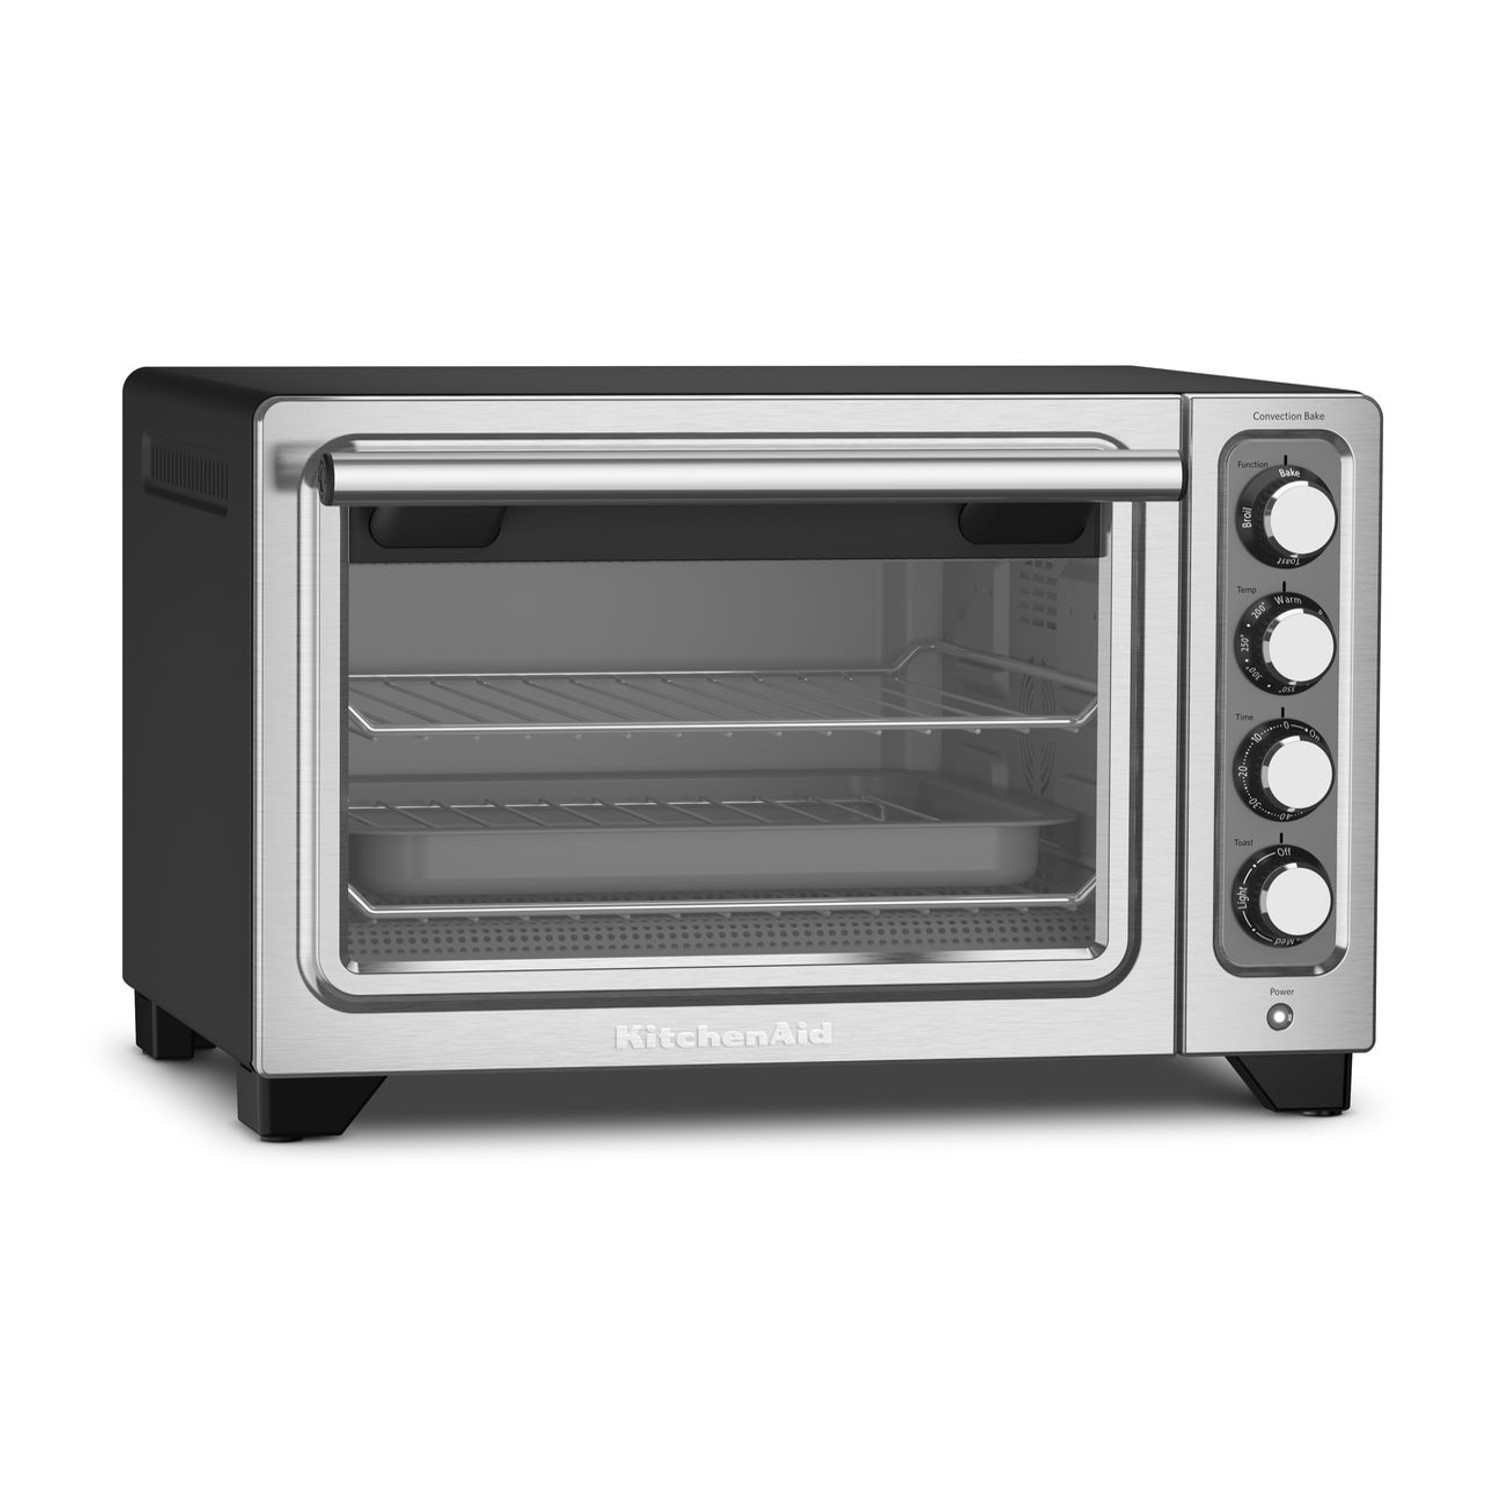 KitchenAid Black Diamond Standard Countertop Compact Oven